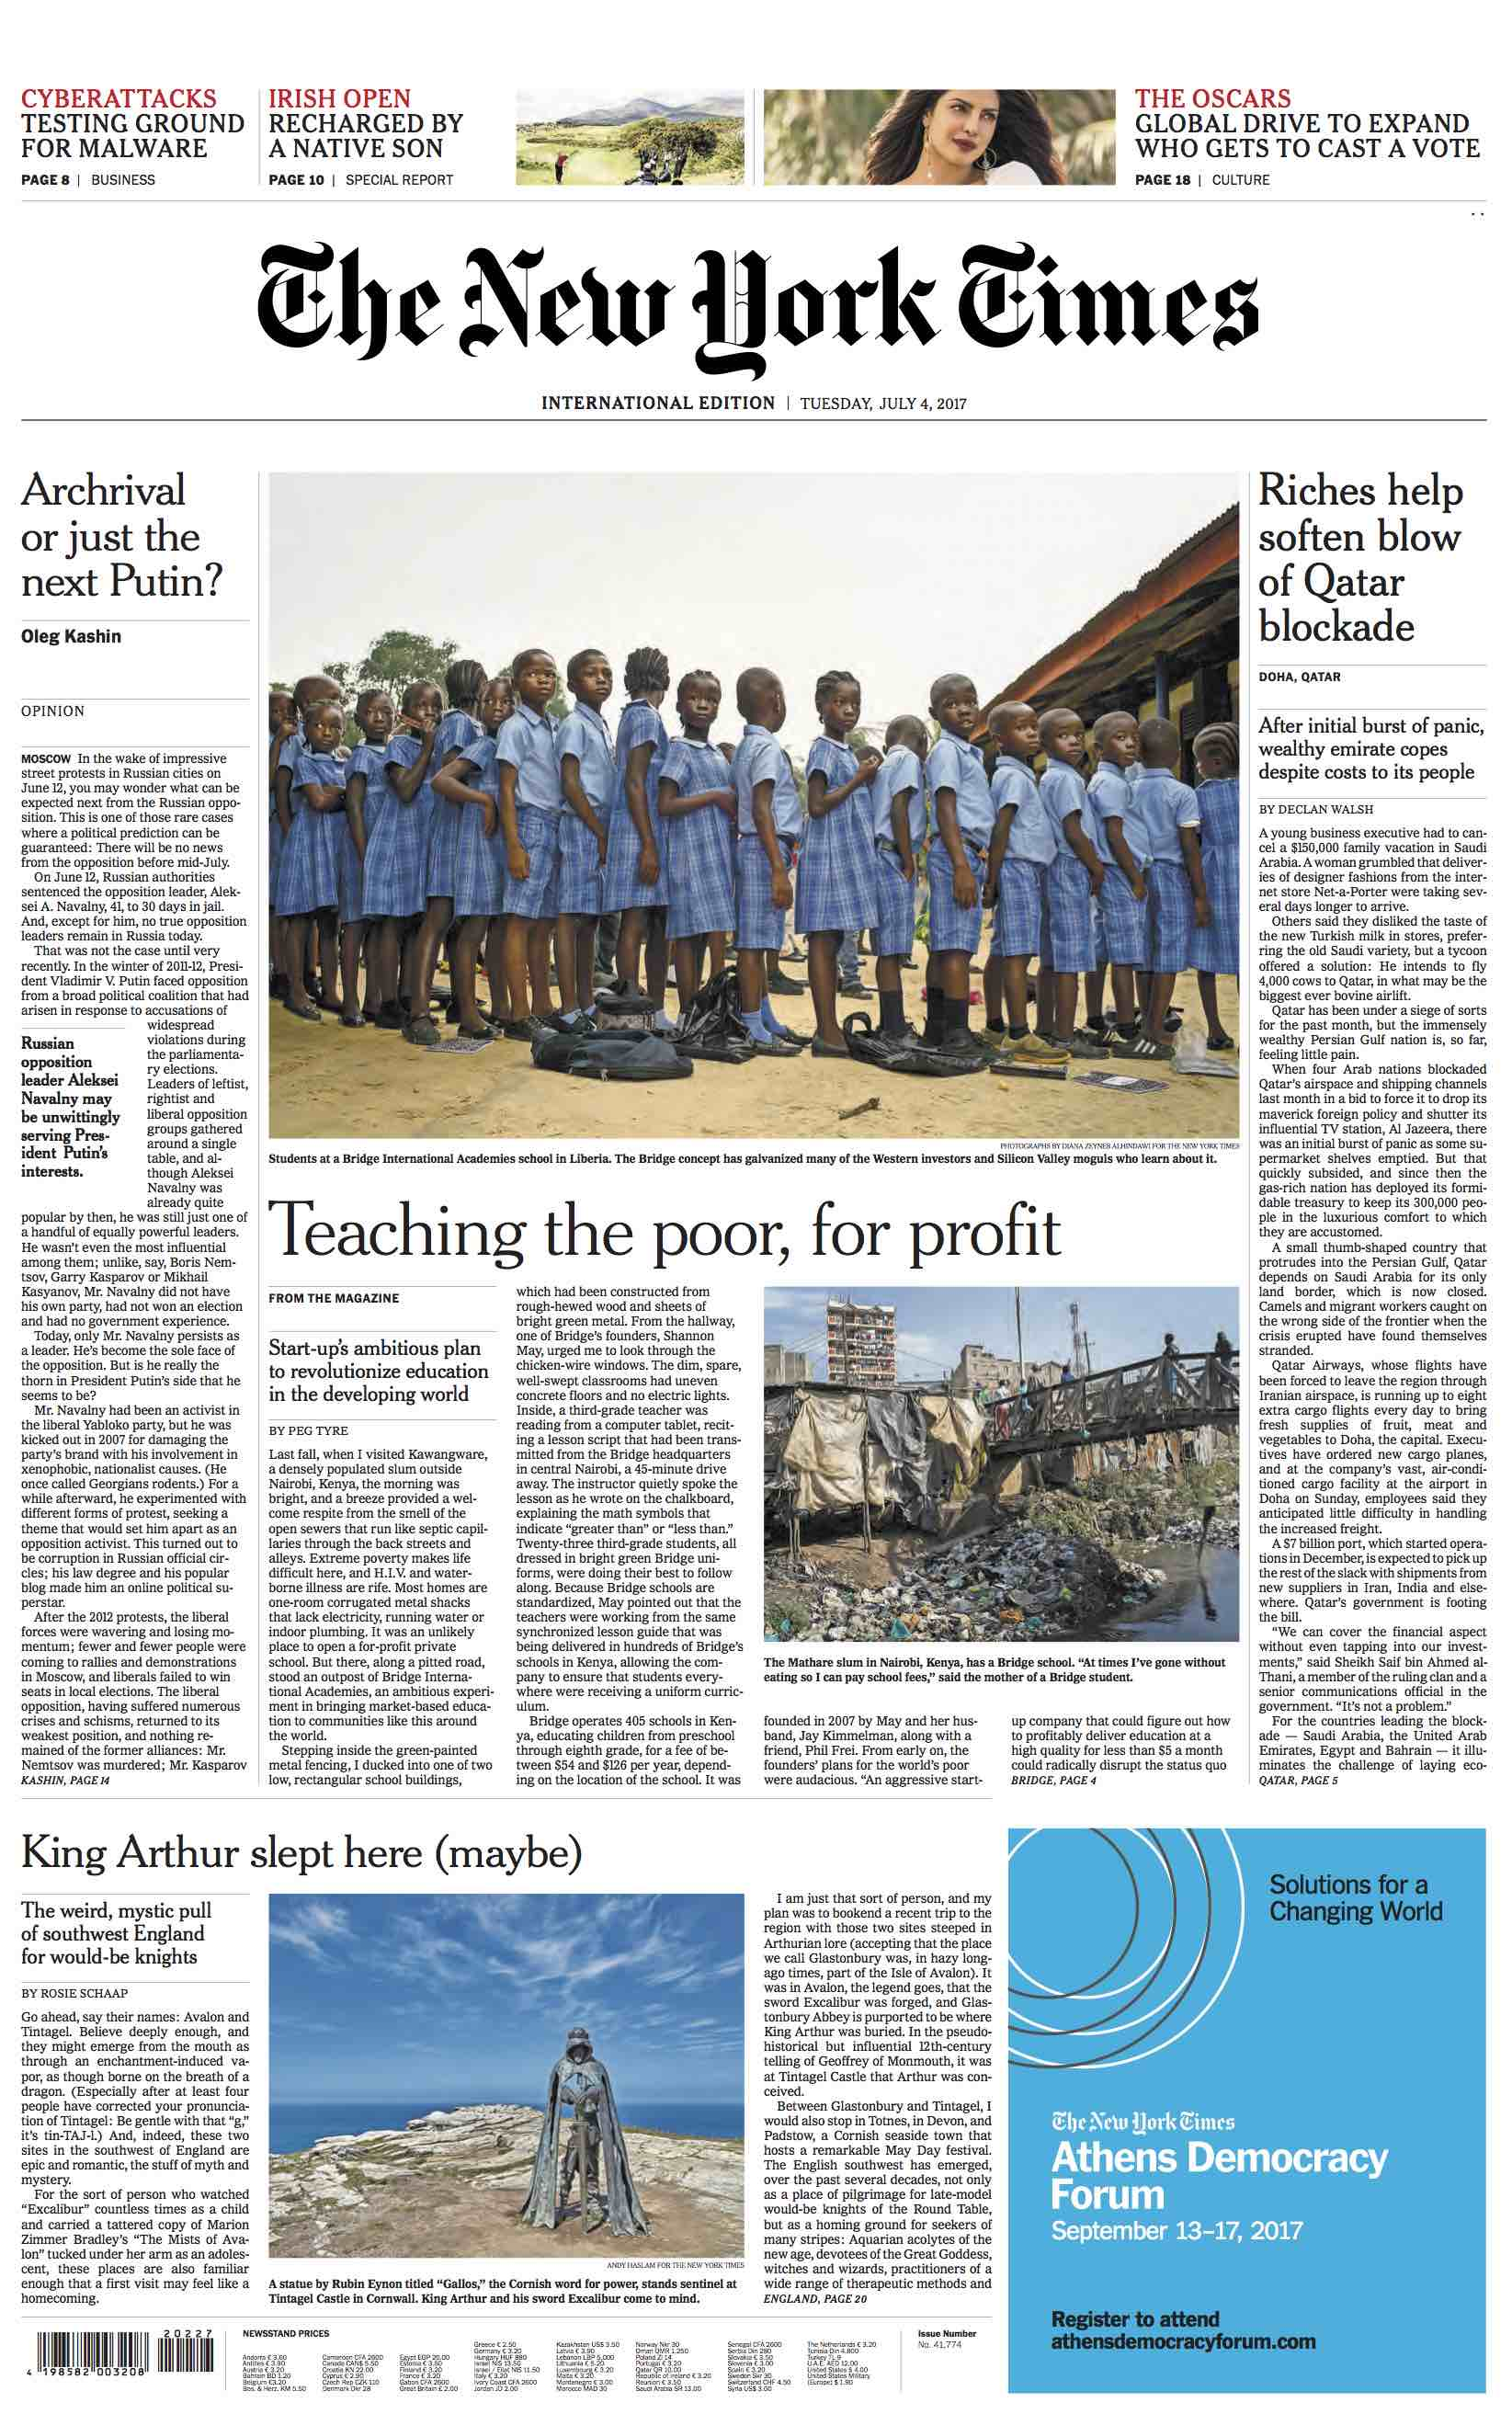 Diana Zeyneb Alhindawi_2017_07_04_International New York Times_page 1 front s_bridge education africa.jpg